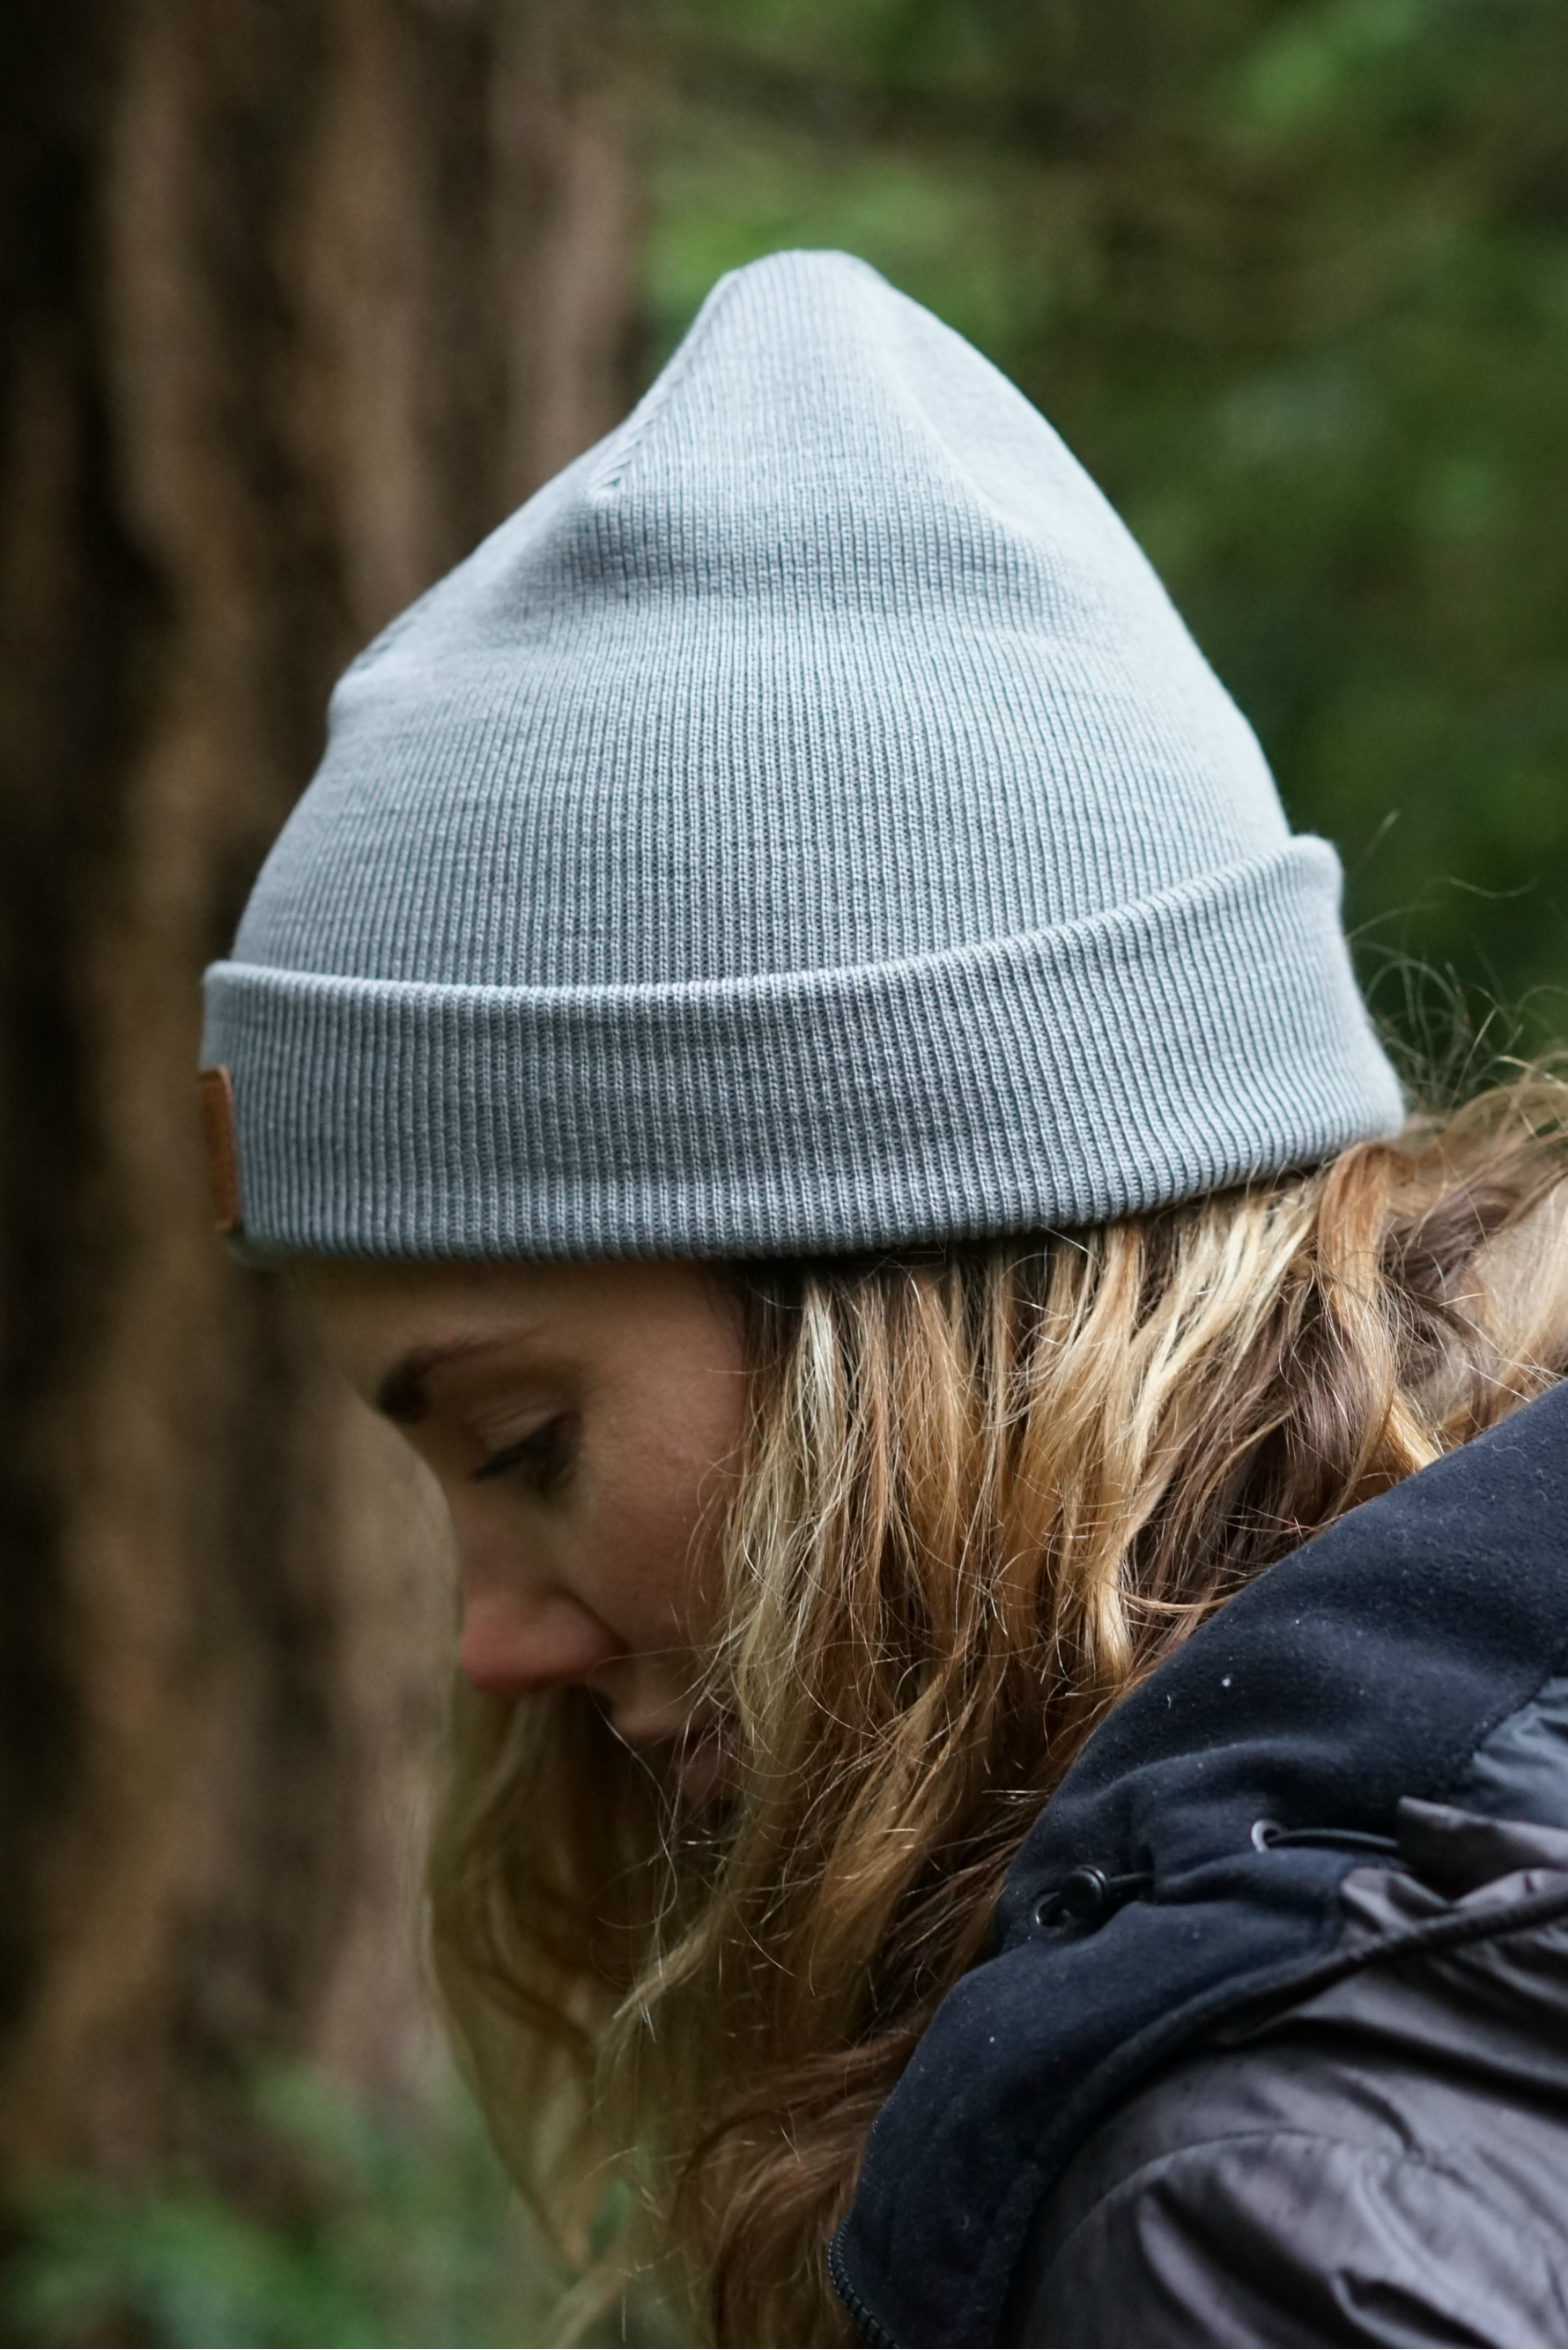 e6046f16bb82f Hipster hiking outfit with a grey wool beanie for Women. Ethical and  ecological sustainable merino wool beanie by VAI-KO. Photo and model   secretagentmike ...